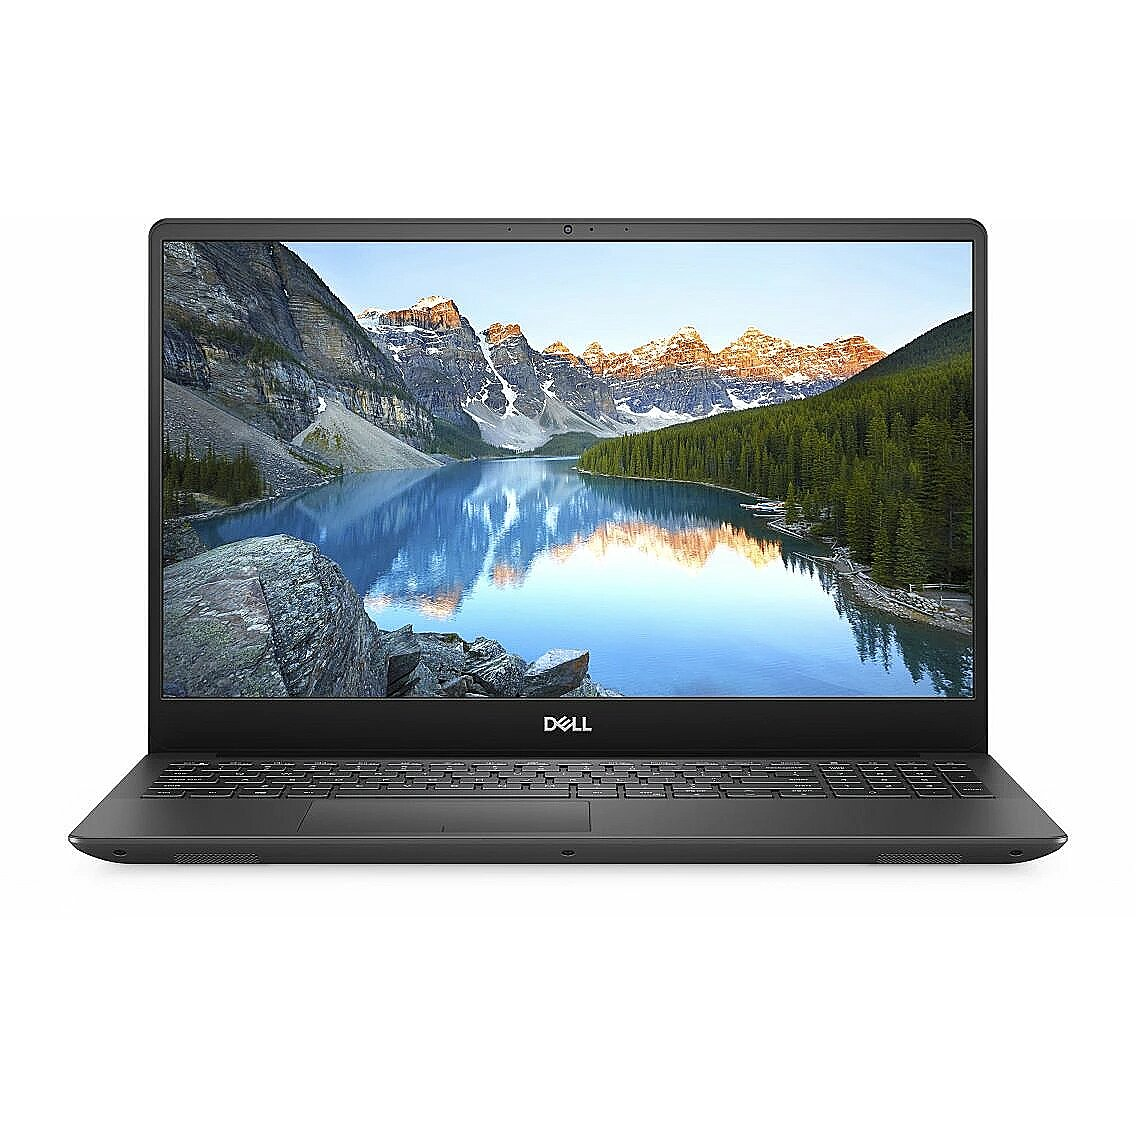 Dell Inspiron 15 (7590) Black, 15.6